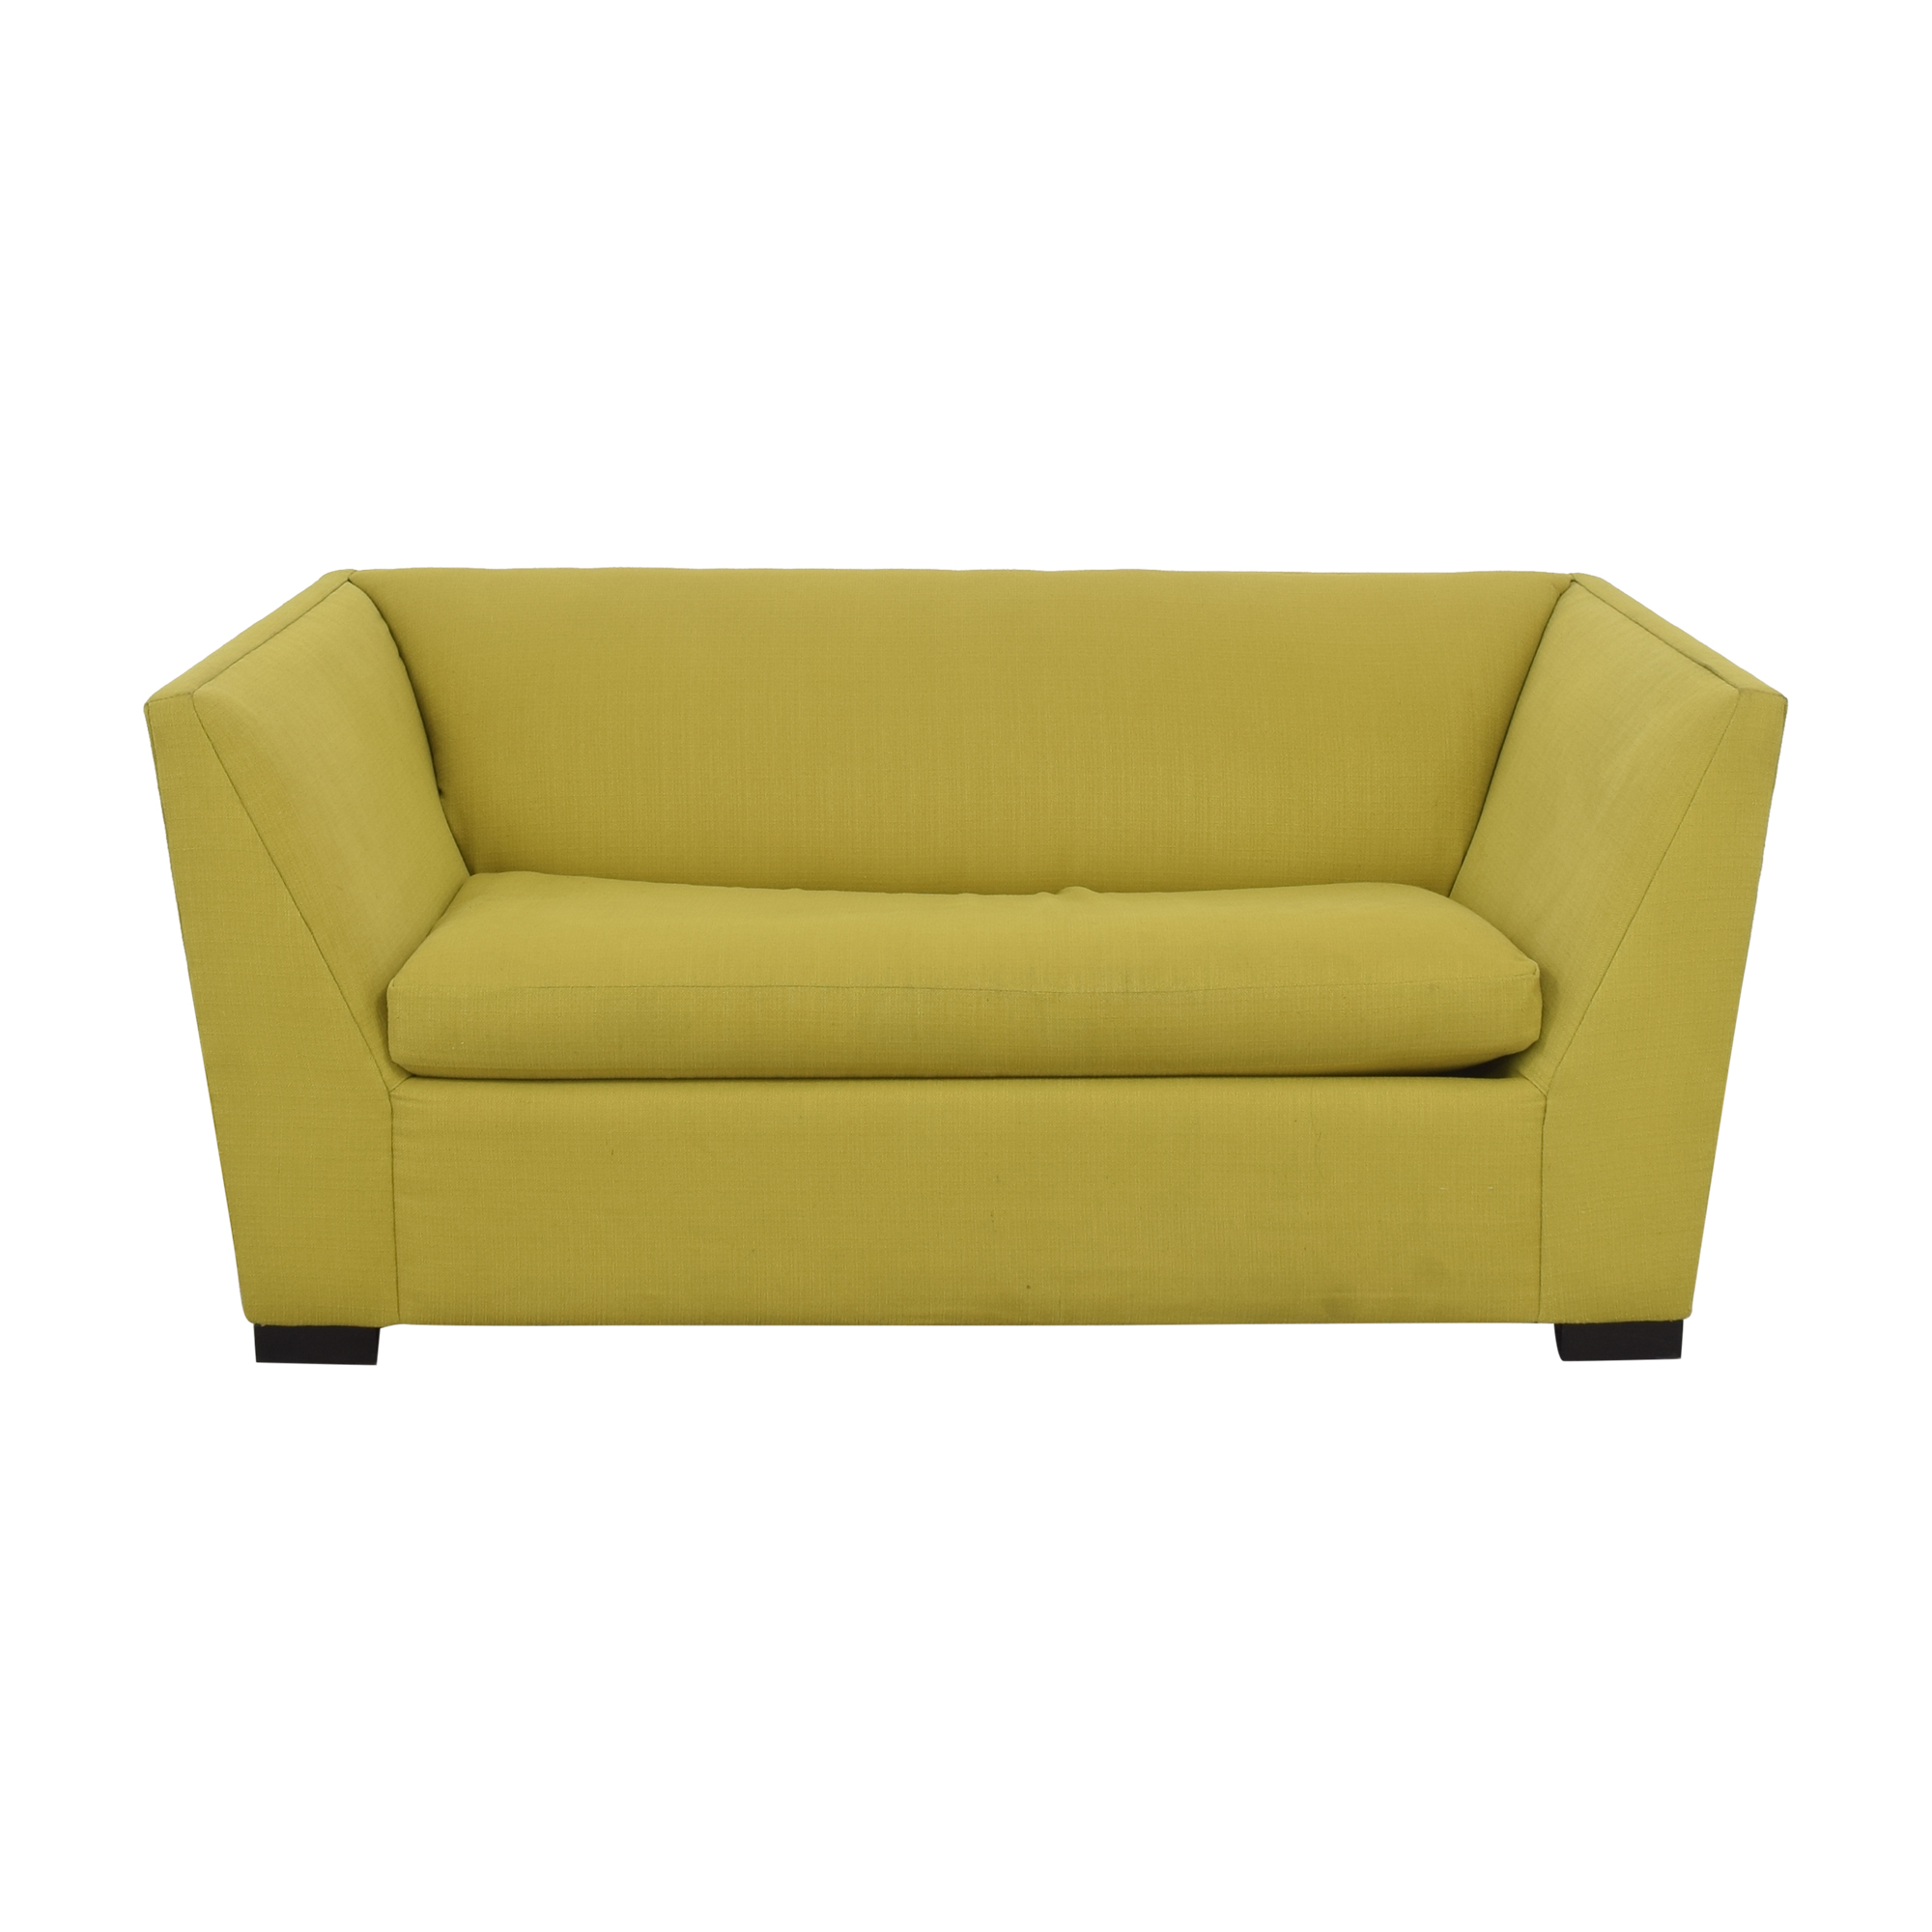 shop CB2 Julius Twin Sleeper Sofa CB2 Sofa Beds